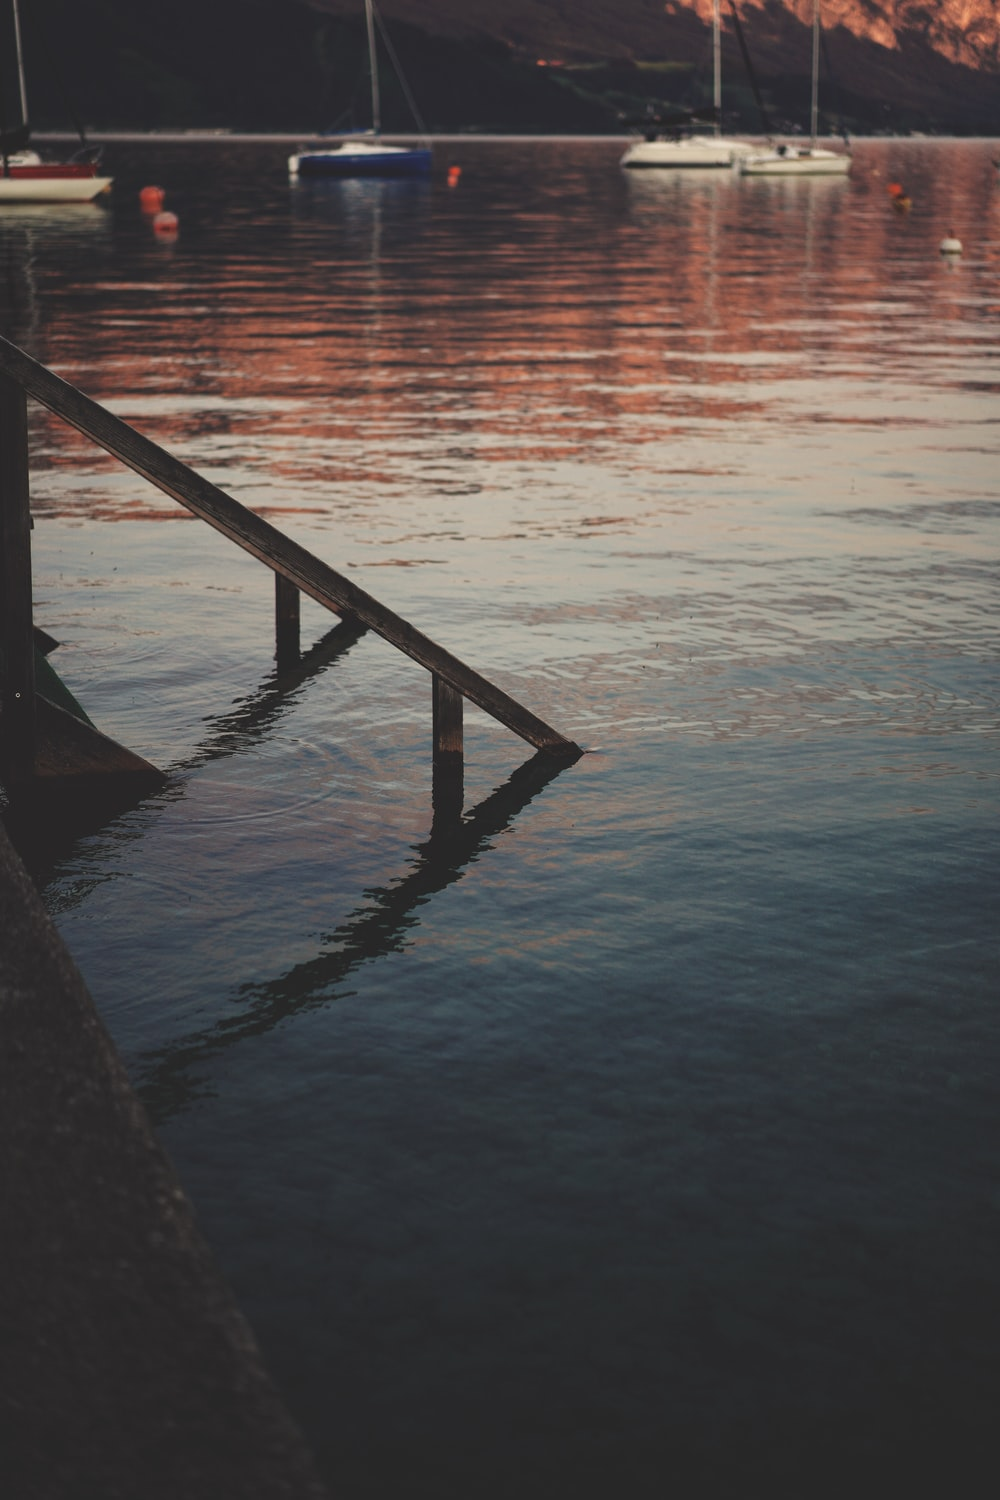 brown wooden dock on body of water during sunset